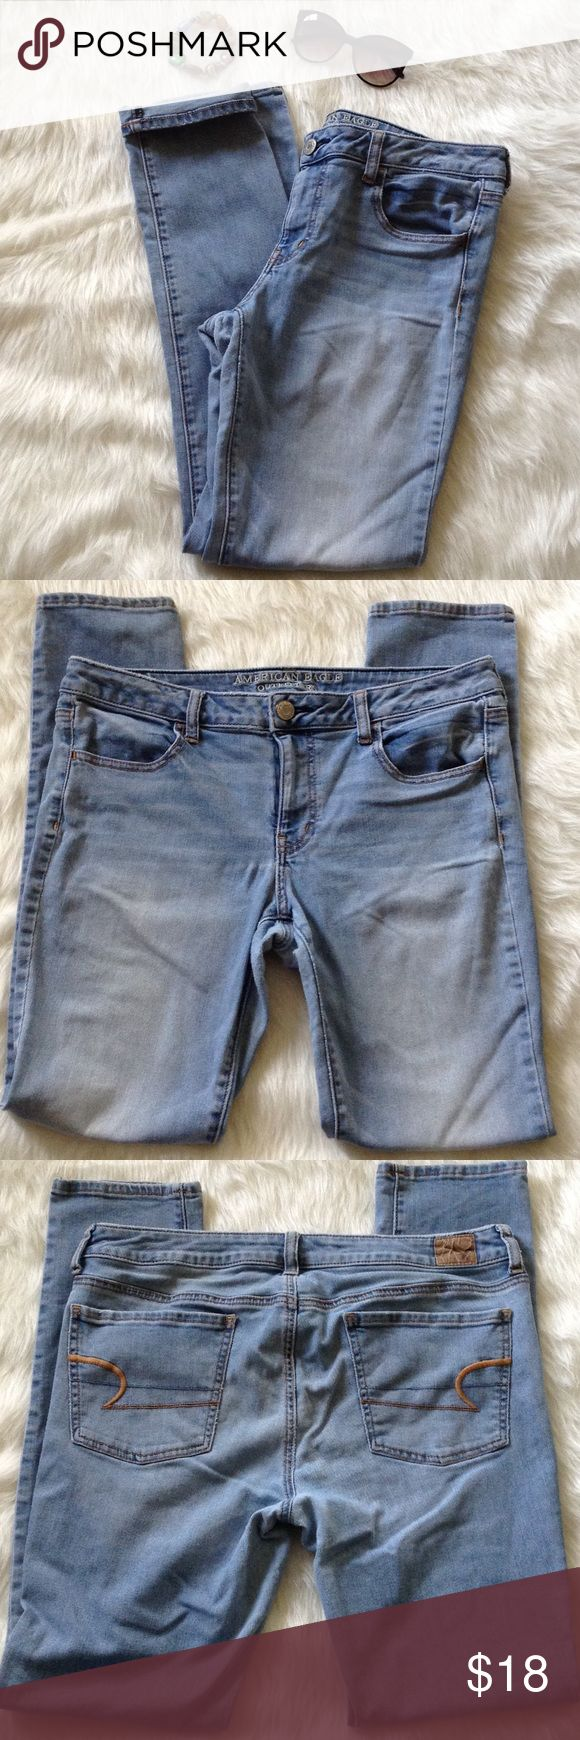 """American Eagle women's jegging jeans stretch 14L American Eagle women's jeggings. The jeggings are a size 14 long. The inseam measures 32"""". The jeggings do have some piling and a couple spots on the front. Sold as is. Smoke free home. Jeans"""